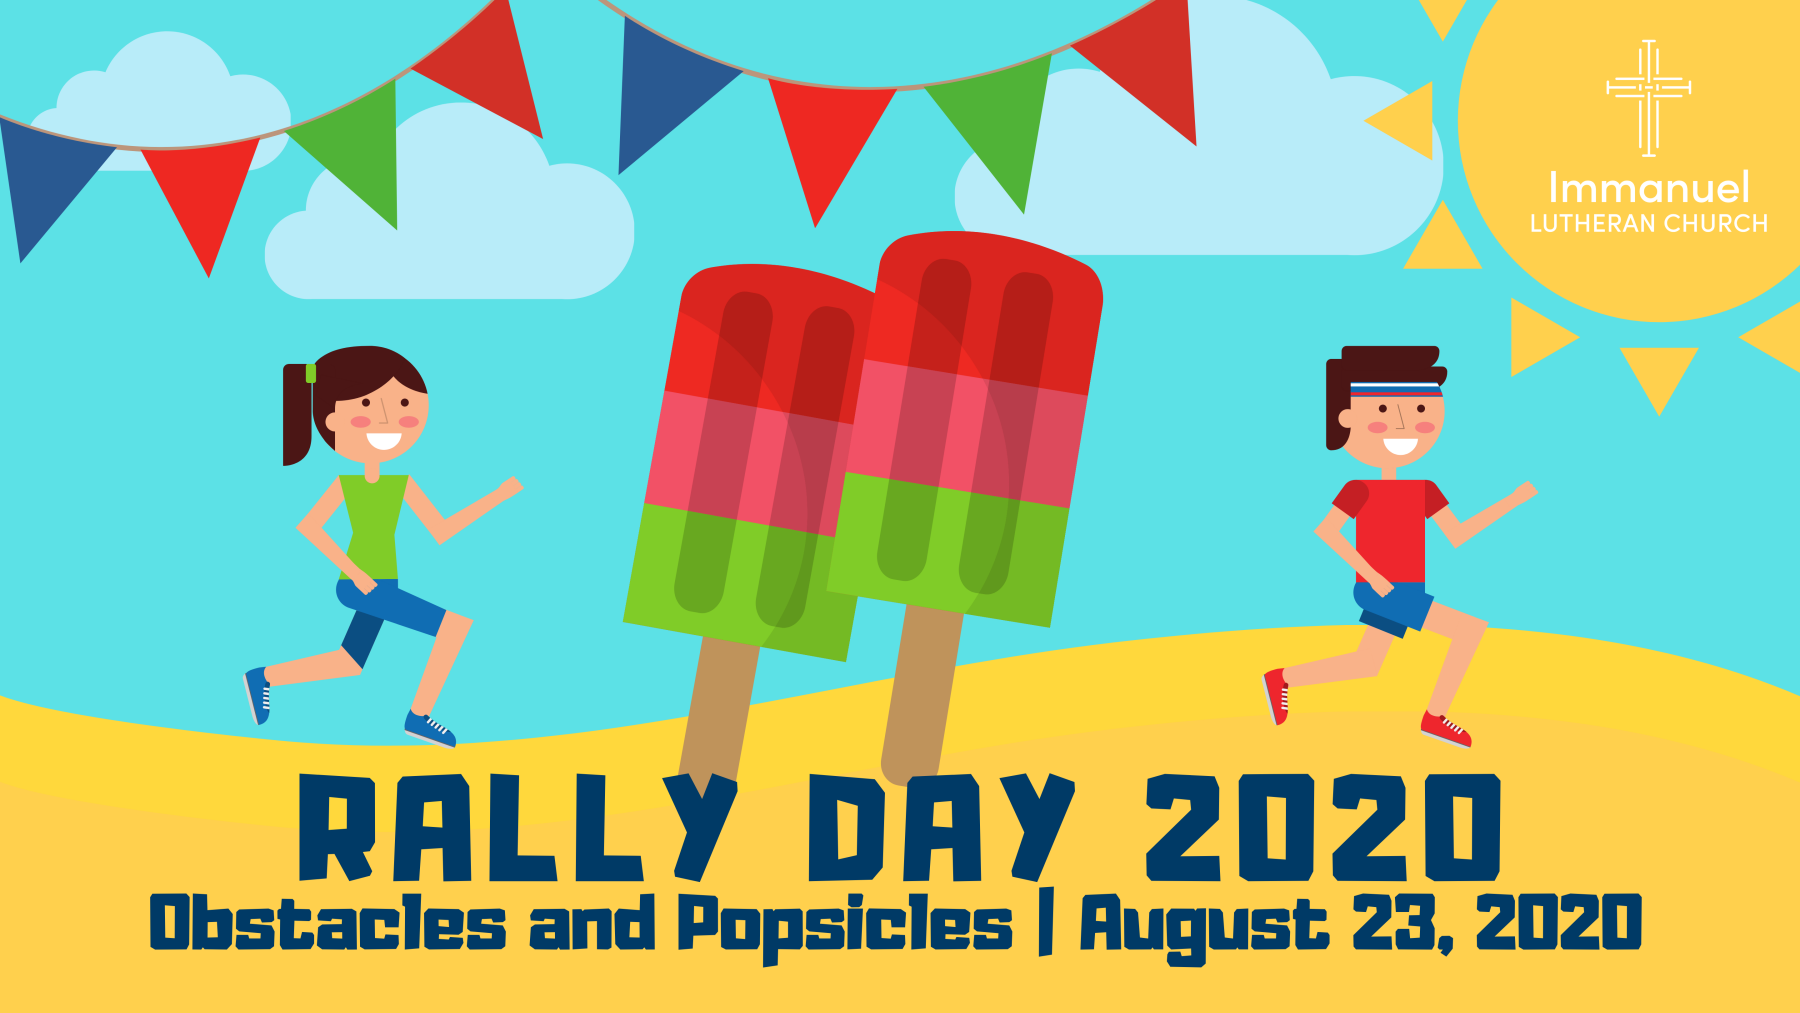 2020 Rally Day - Obstacles and Popsicles